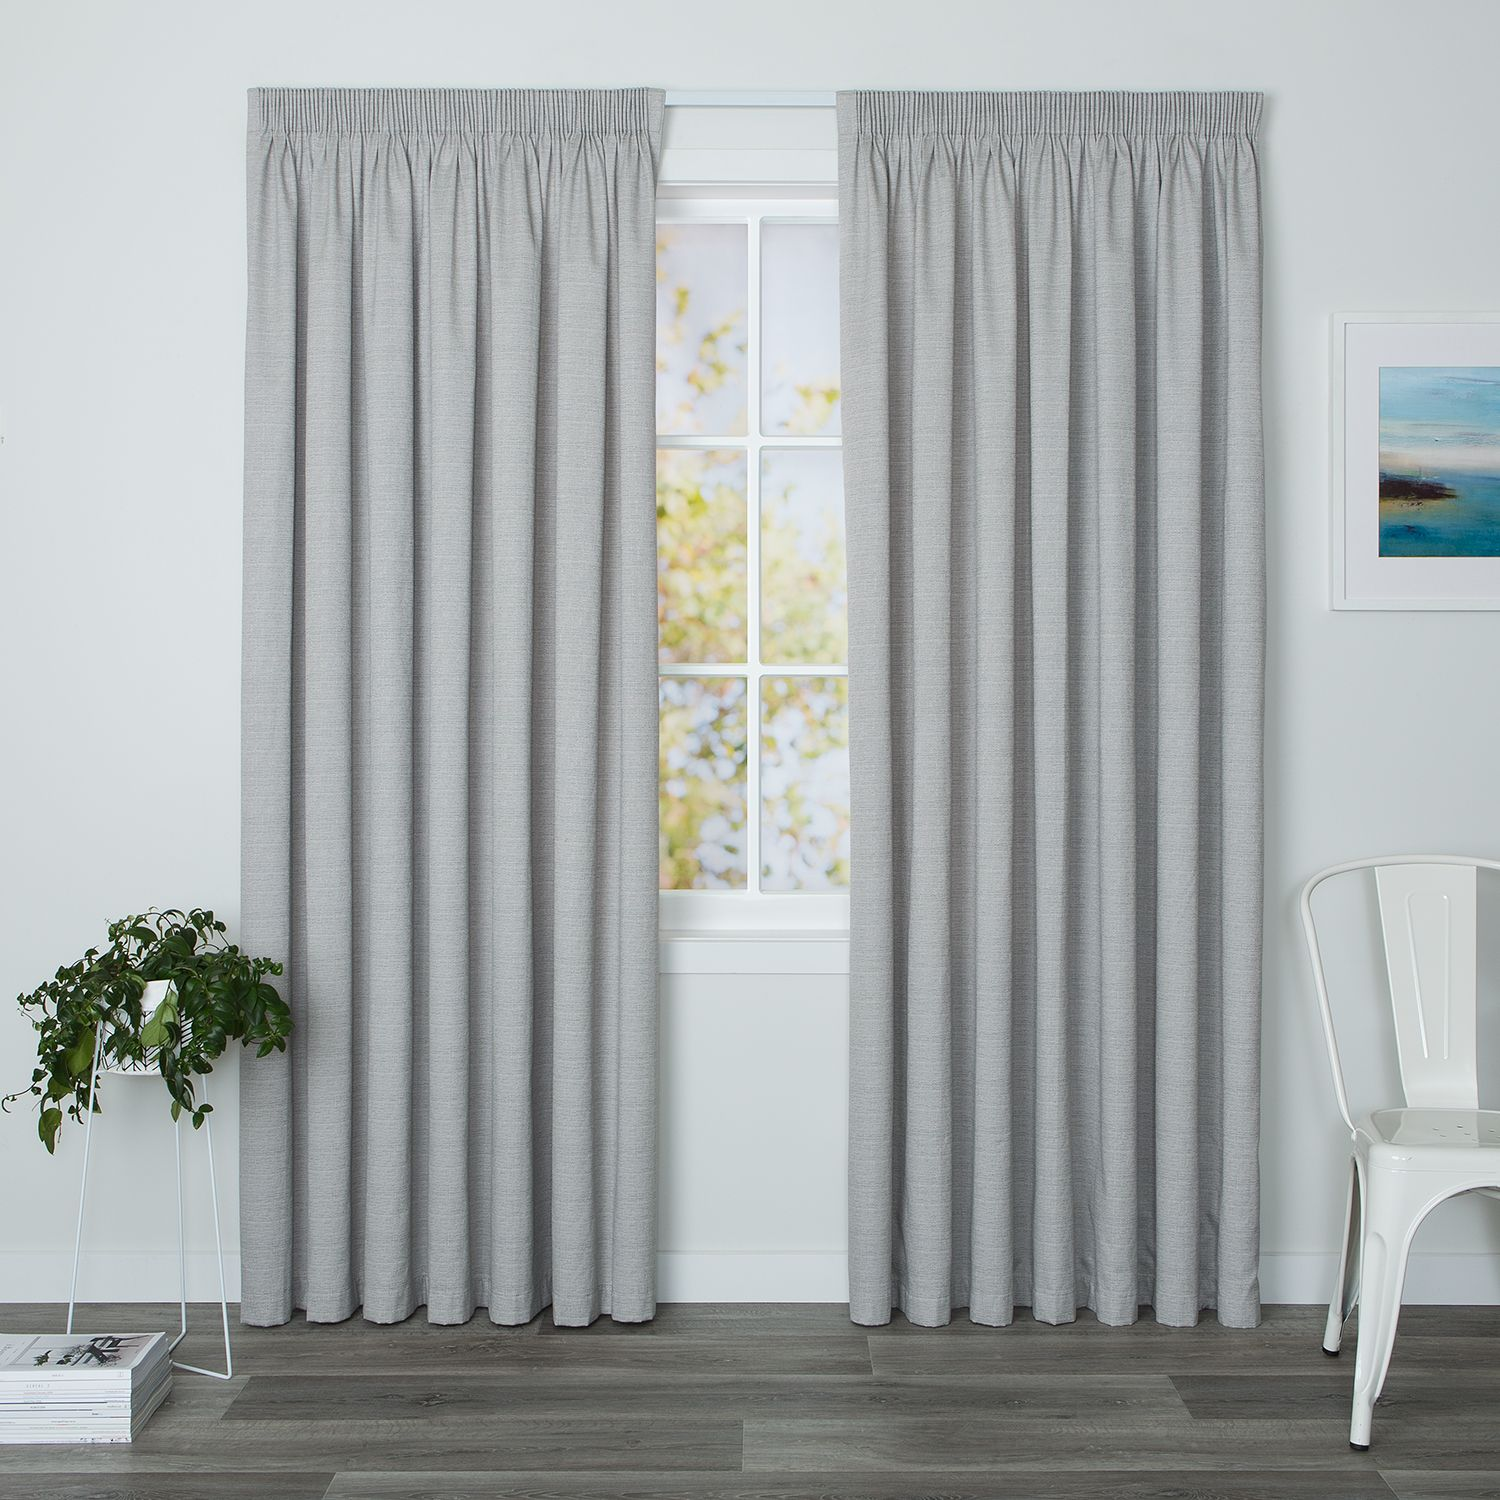 Ready Made Thermal Curtains Eaton Concrete Readymade Thermal Pencil Pleat Curtain Curtain